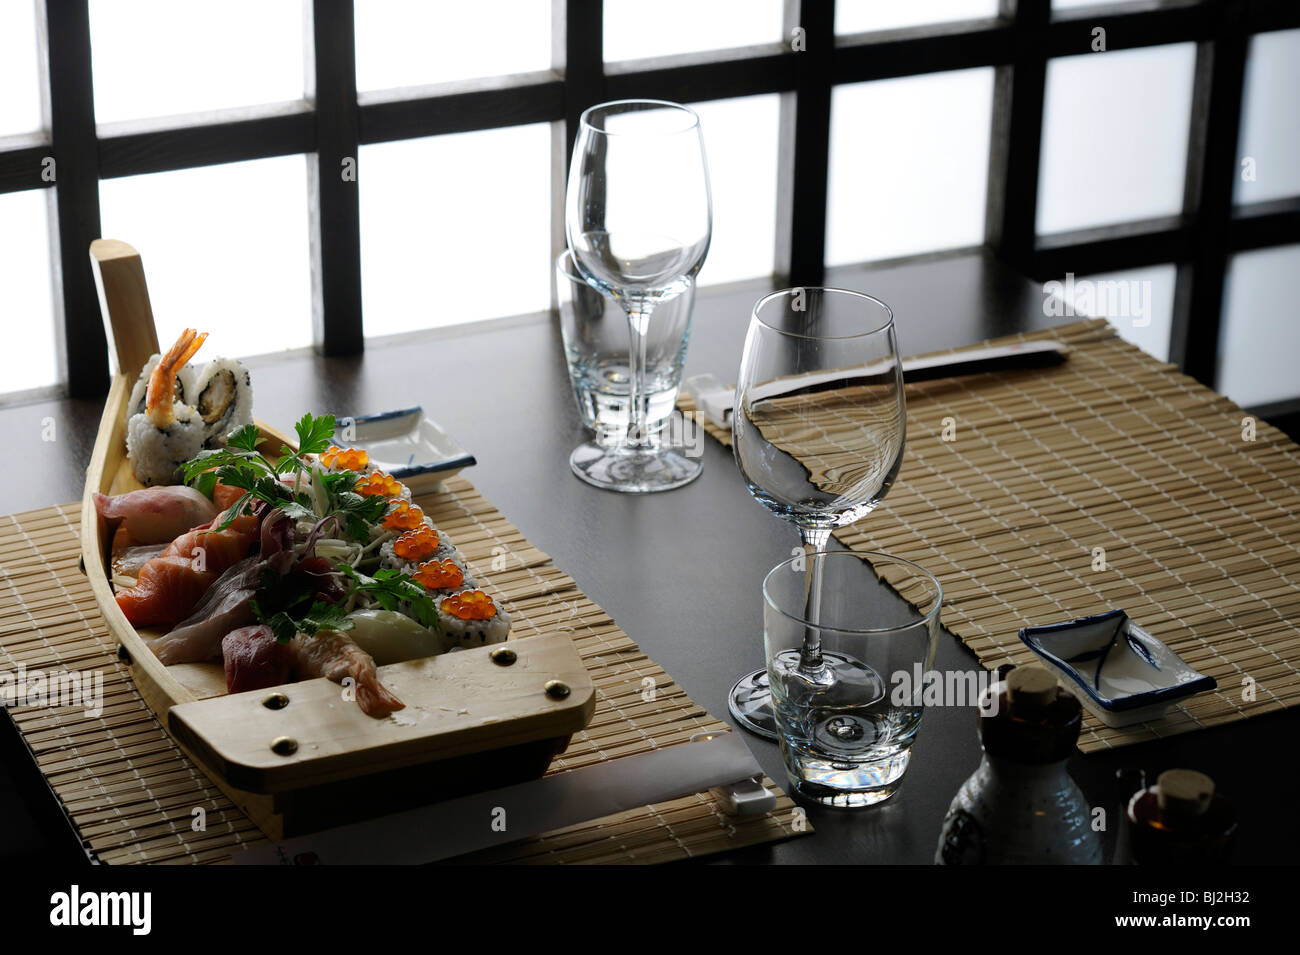 A boat of sushi in a table of elegant Japanese restaurant - Stock Image